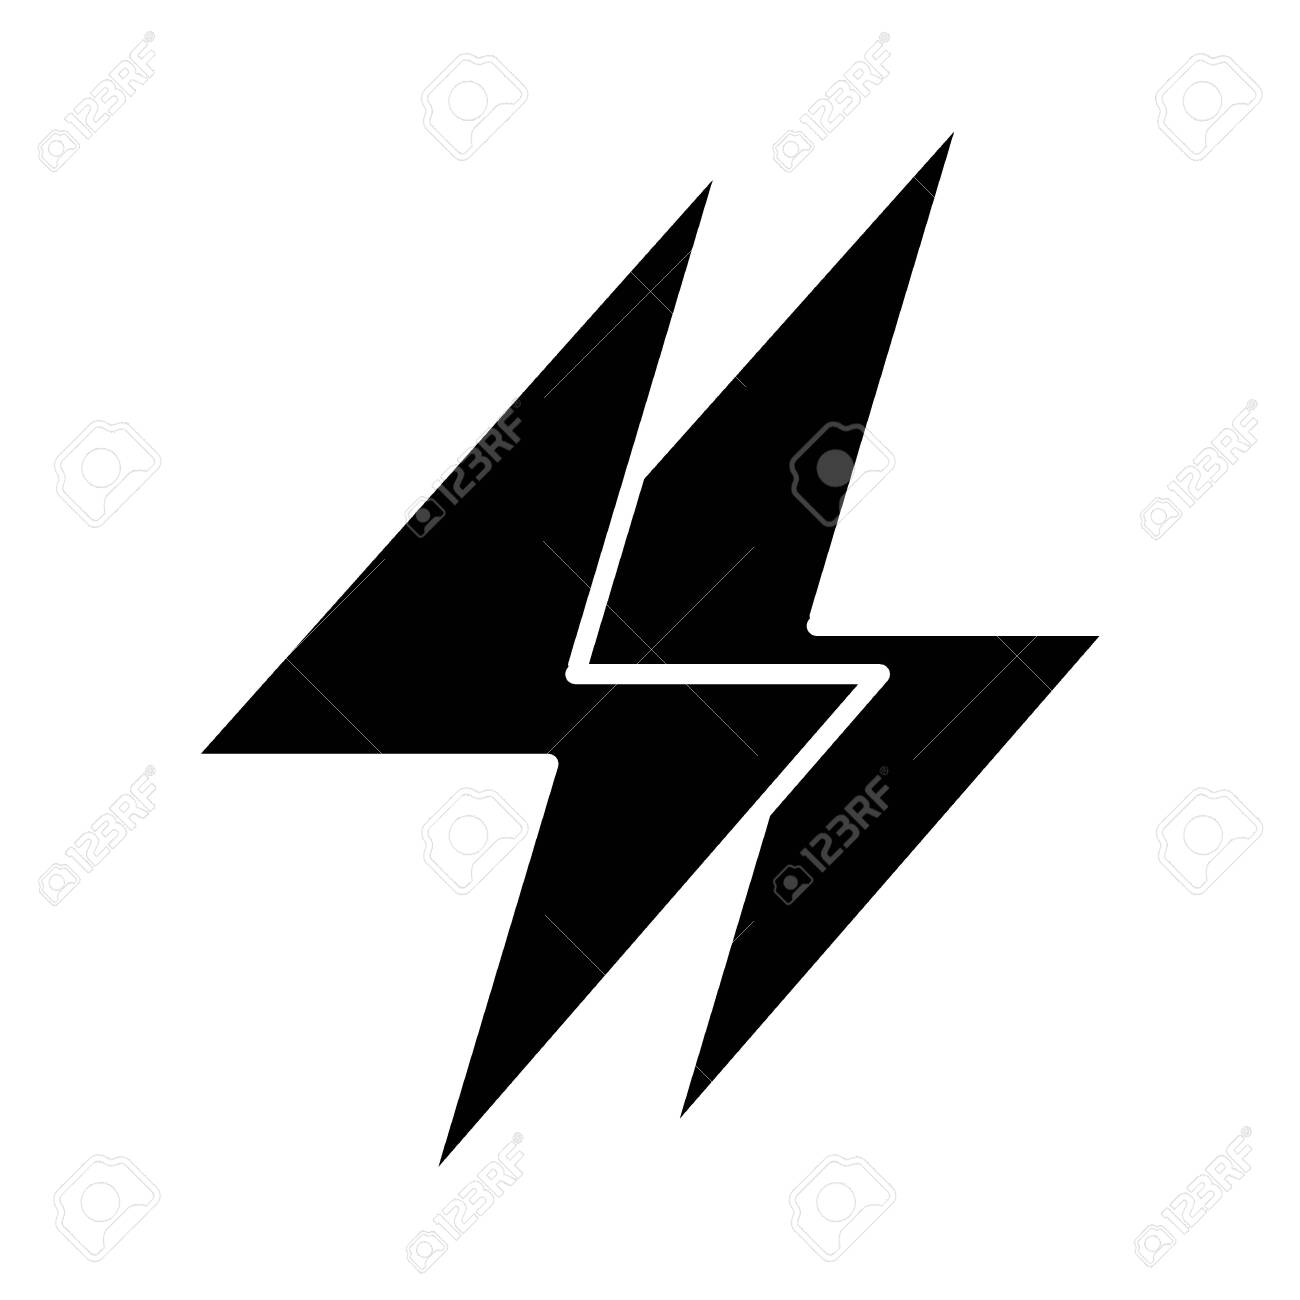 Energy Solid Icon Electricity Illustration Isolated On White Royalty Free Cliparts Vectors And Stock Illustration Image 122757314